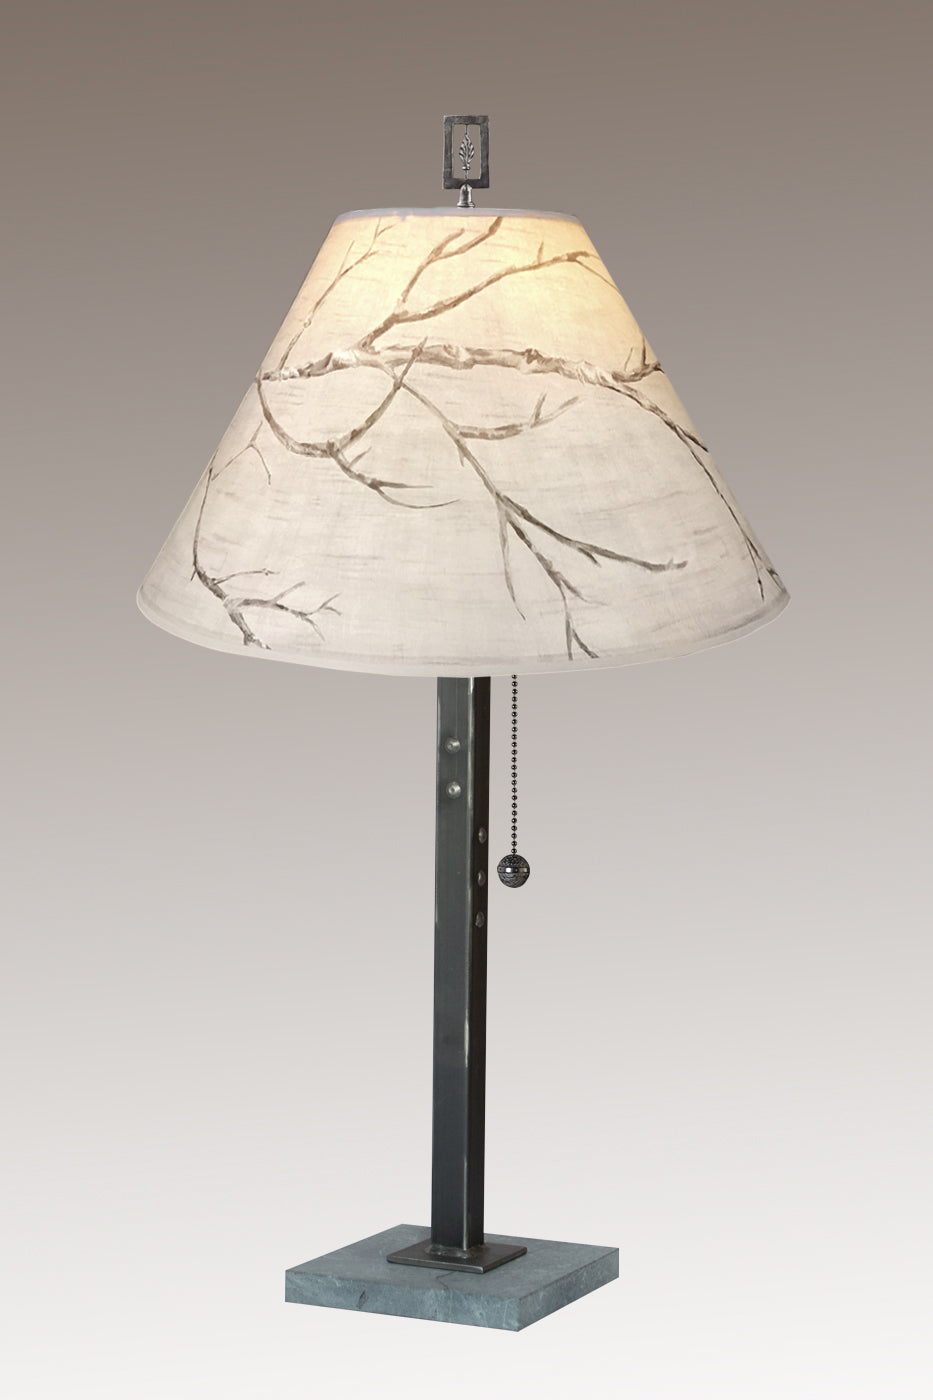 Steel Table Lamp on Italian Marble with Medium Conical Shade in Sweeping Branch